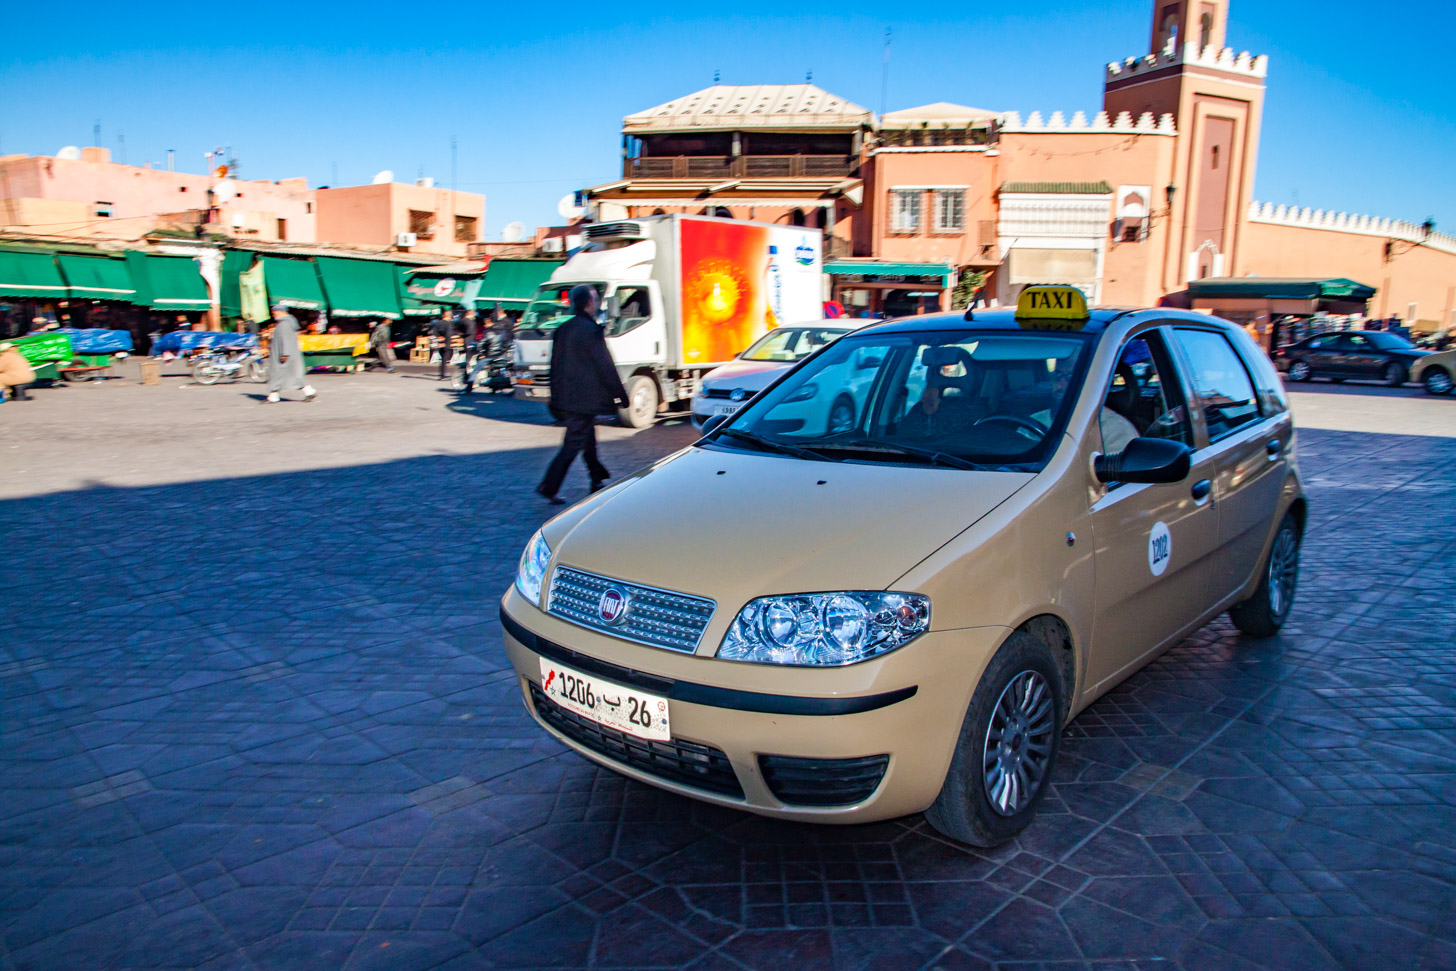 Een taxi in Marrakech